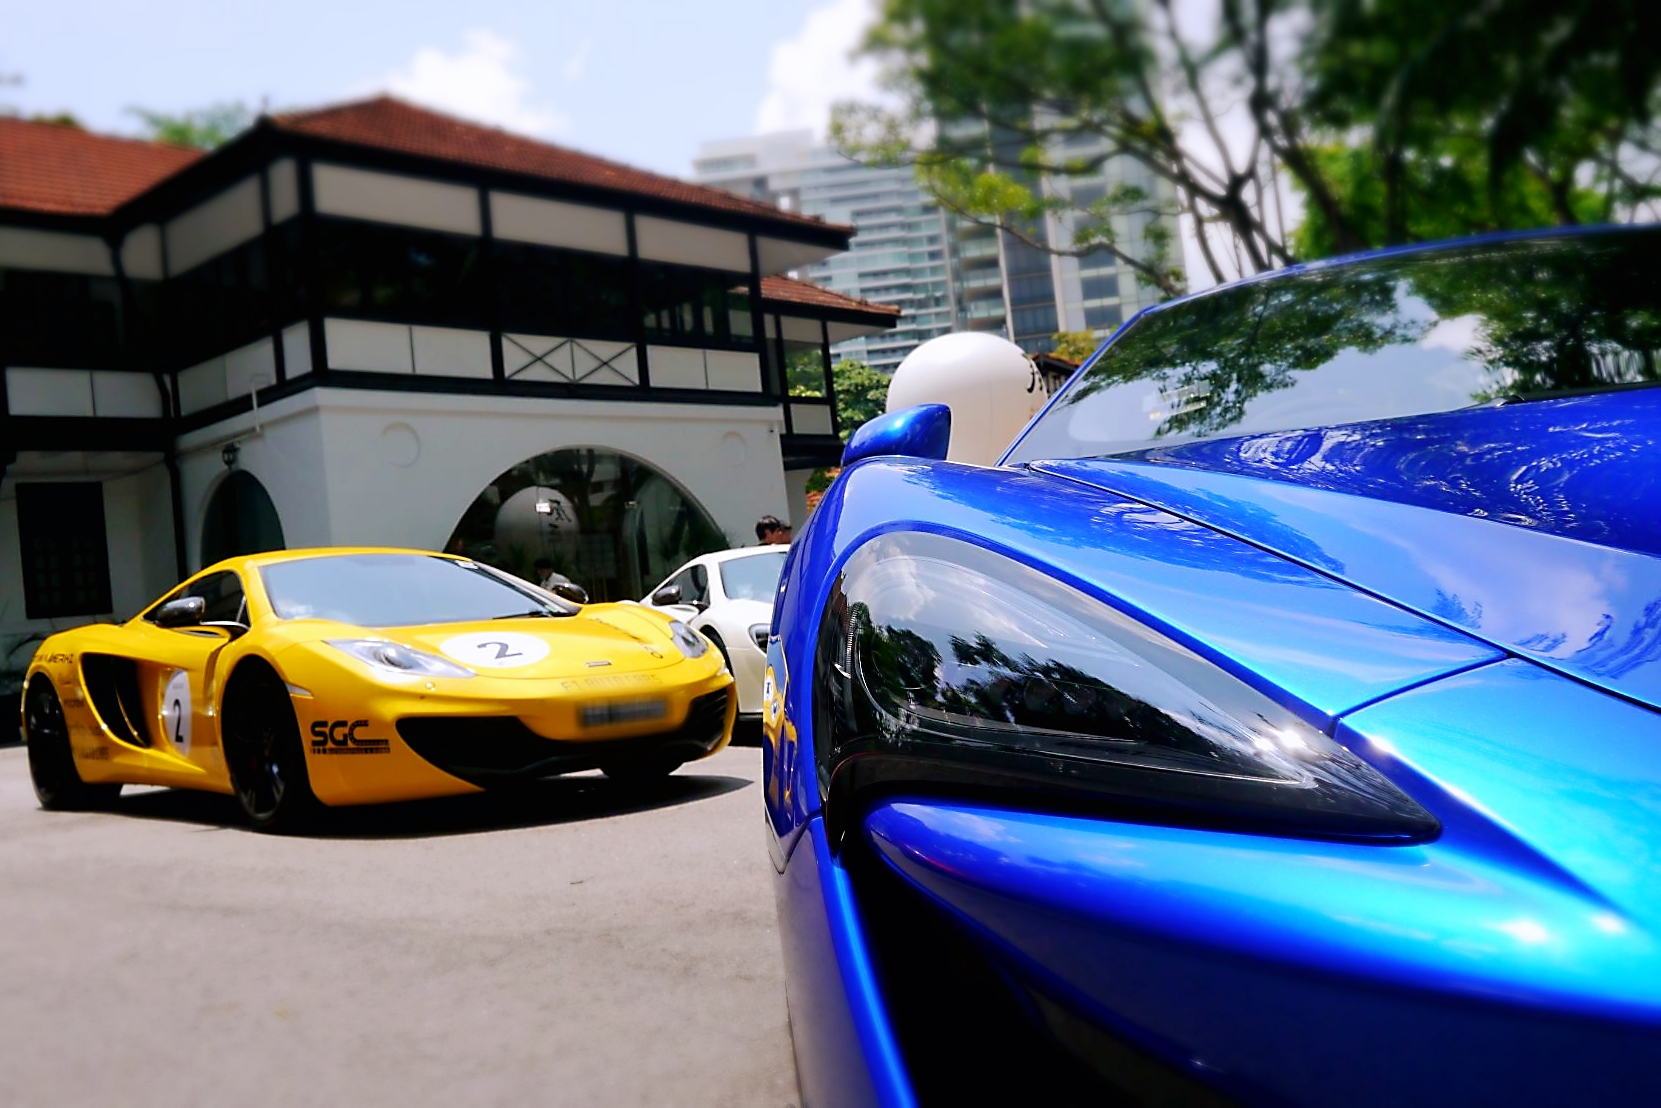 The timeless designs of the McLaren MP4-12C and the new McLaren 600LT set against the colonial architecture of the restaurant